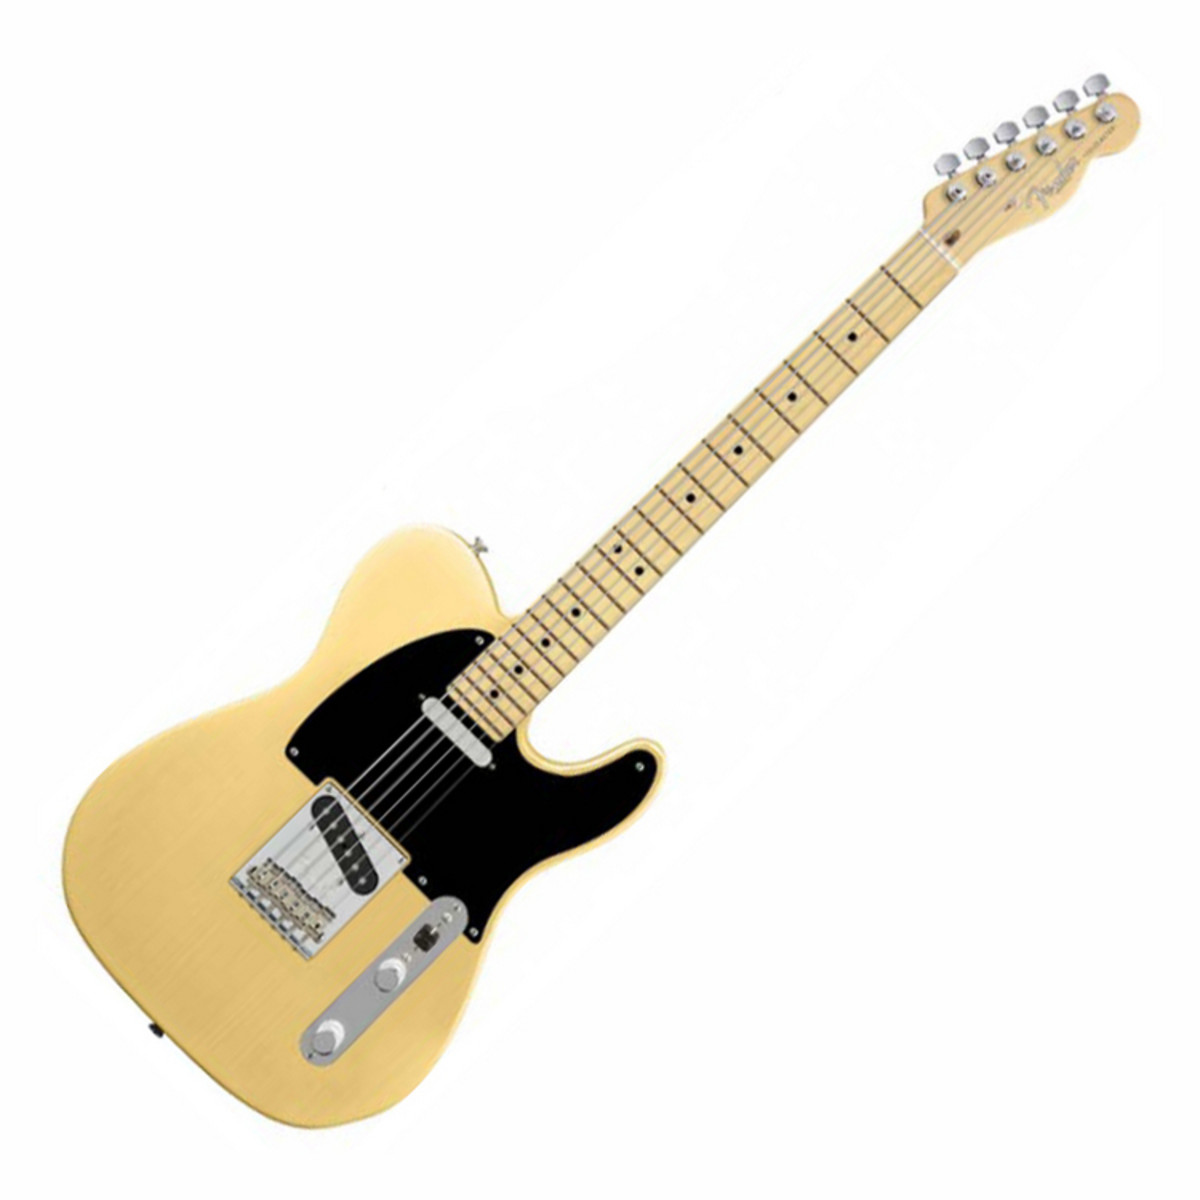 disc fender 60th anniversary telecaster blonde at gear4music. Black Bedroom Furniture Sets. Home Design Ideas